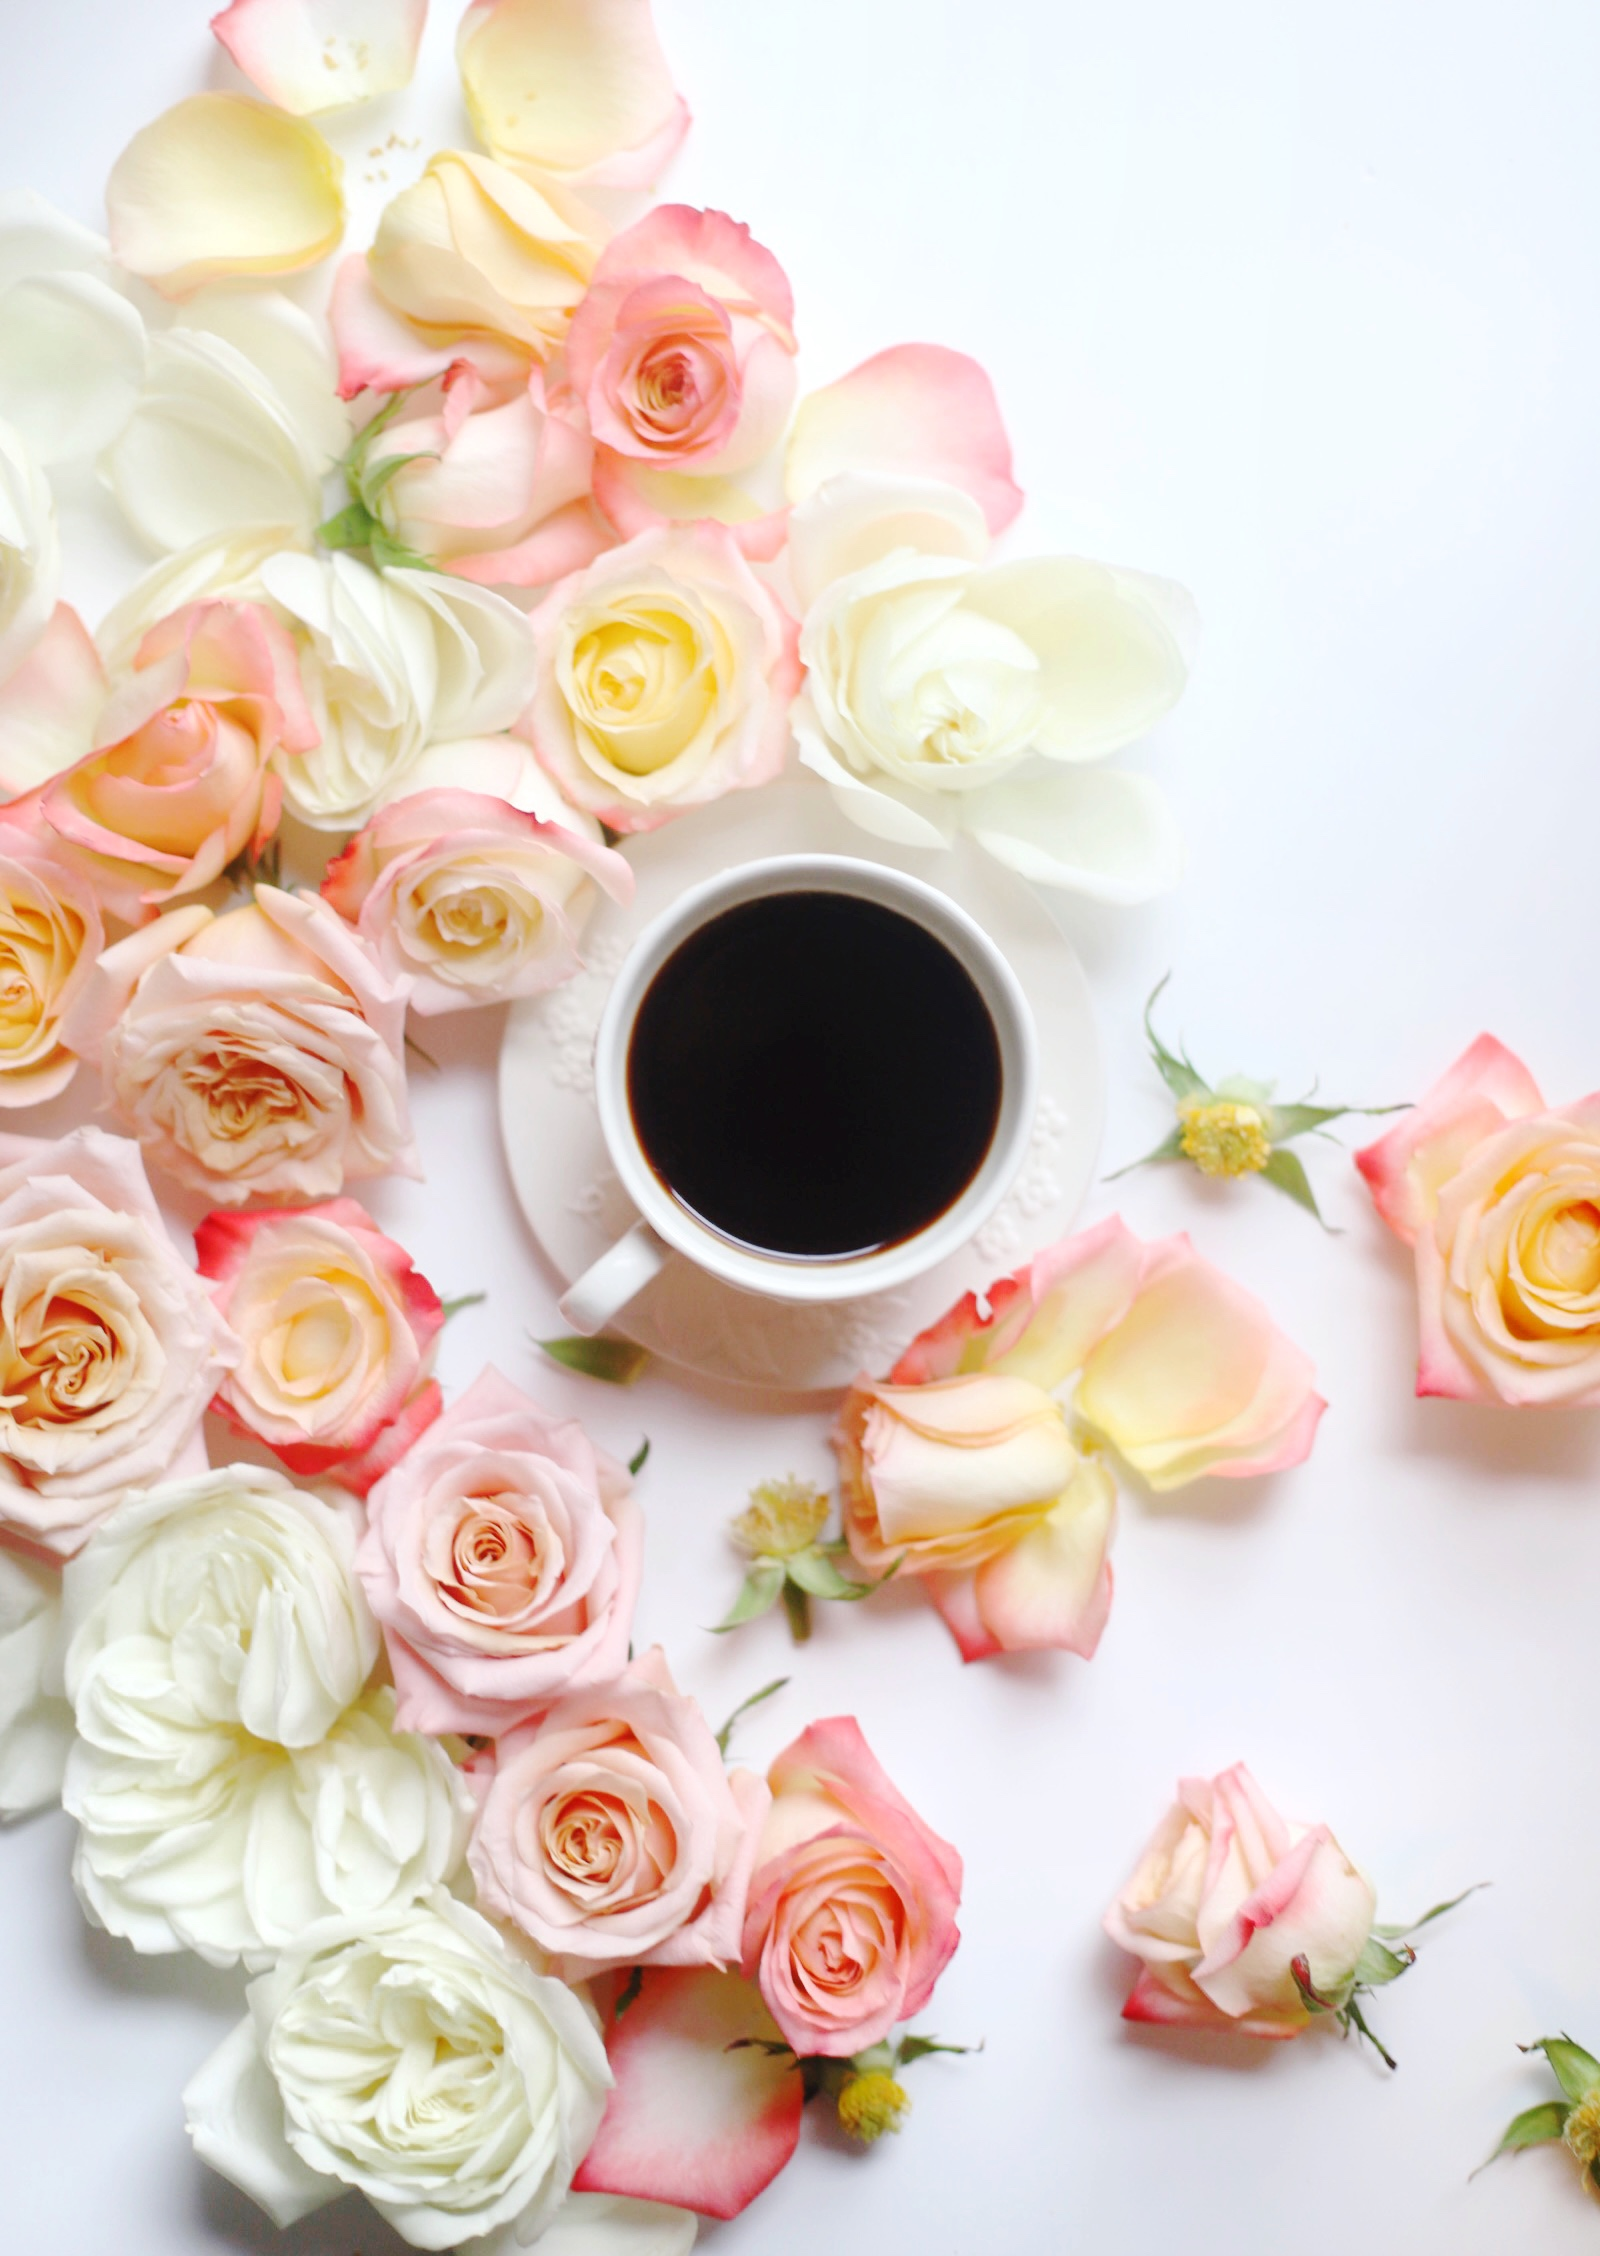 petal roses and black coffee for Weekend Plans